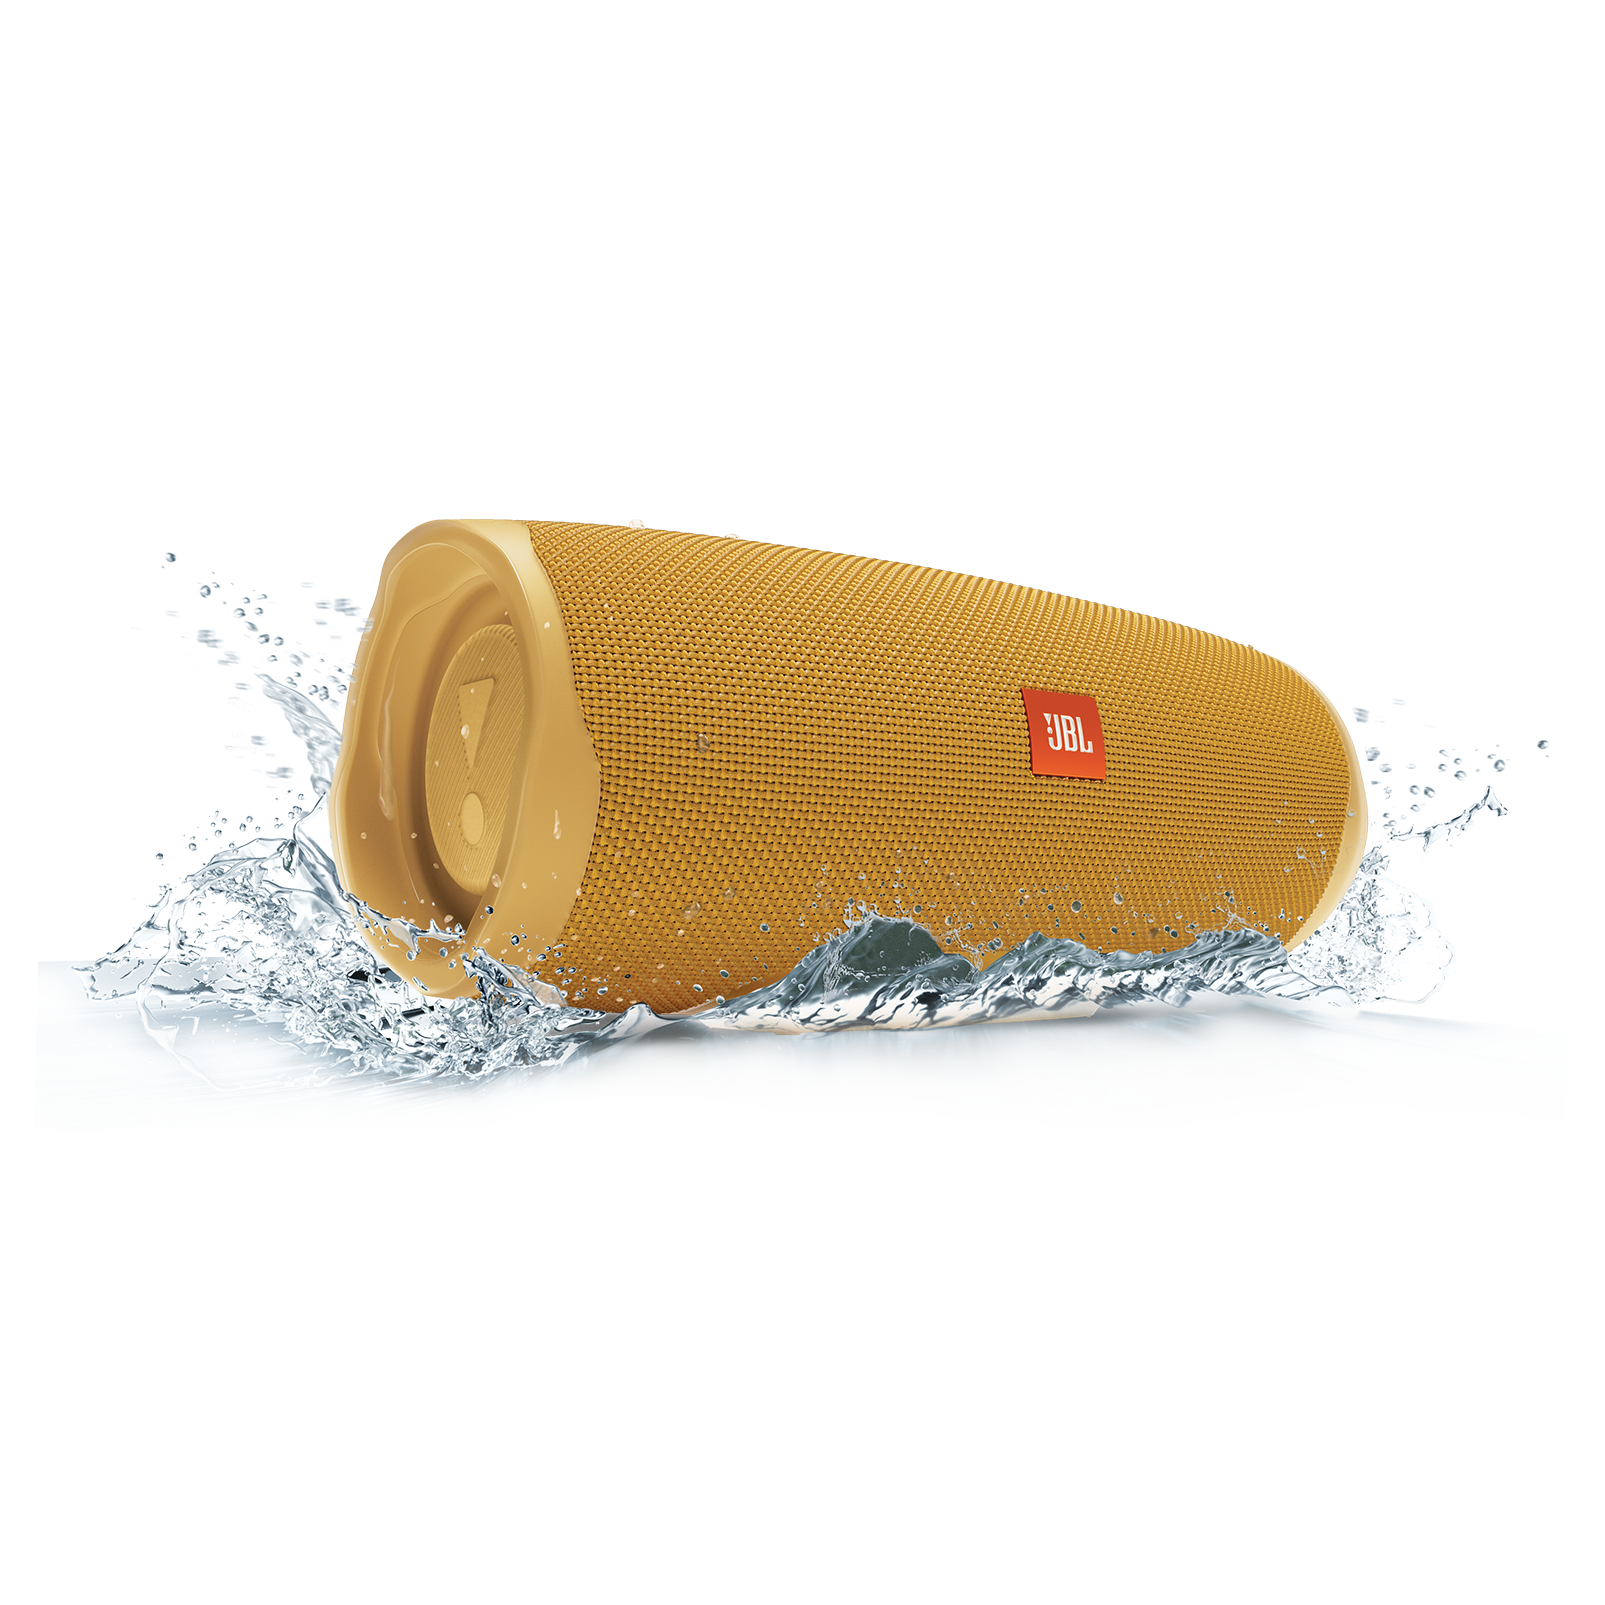 JBL Charge 4 - Mustard Yellow - Portable Bluetooth speaker - Detailshot 5